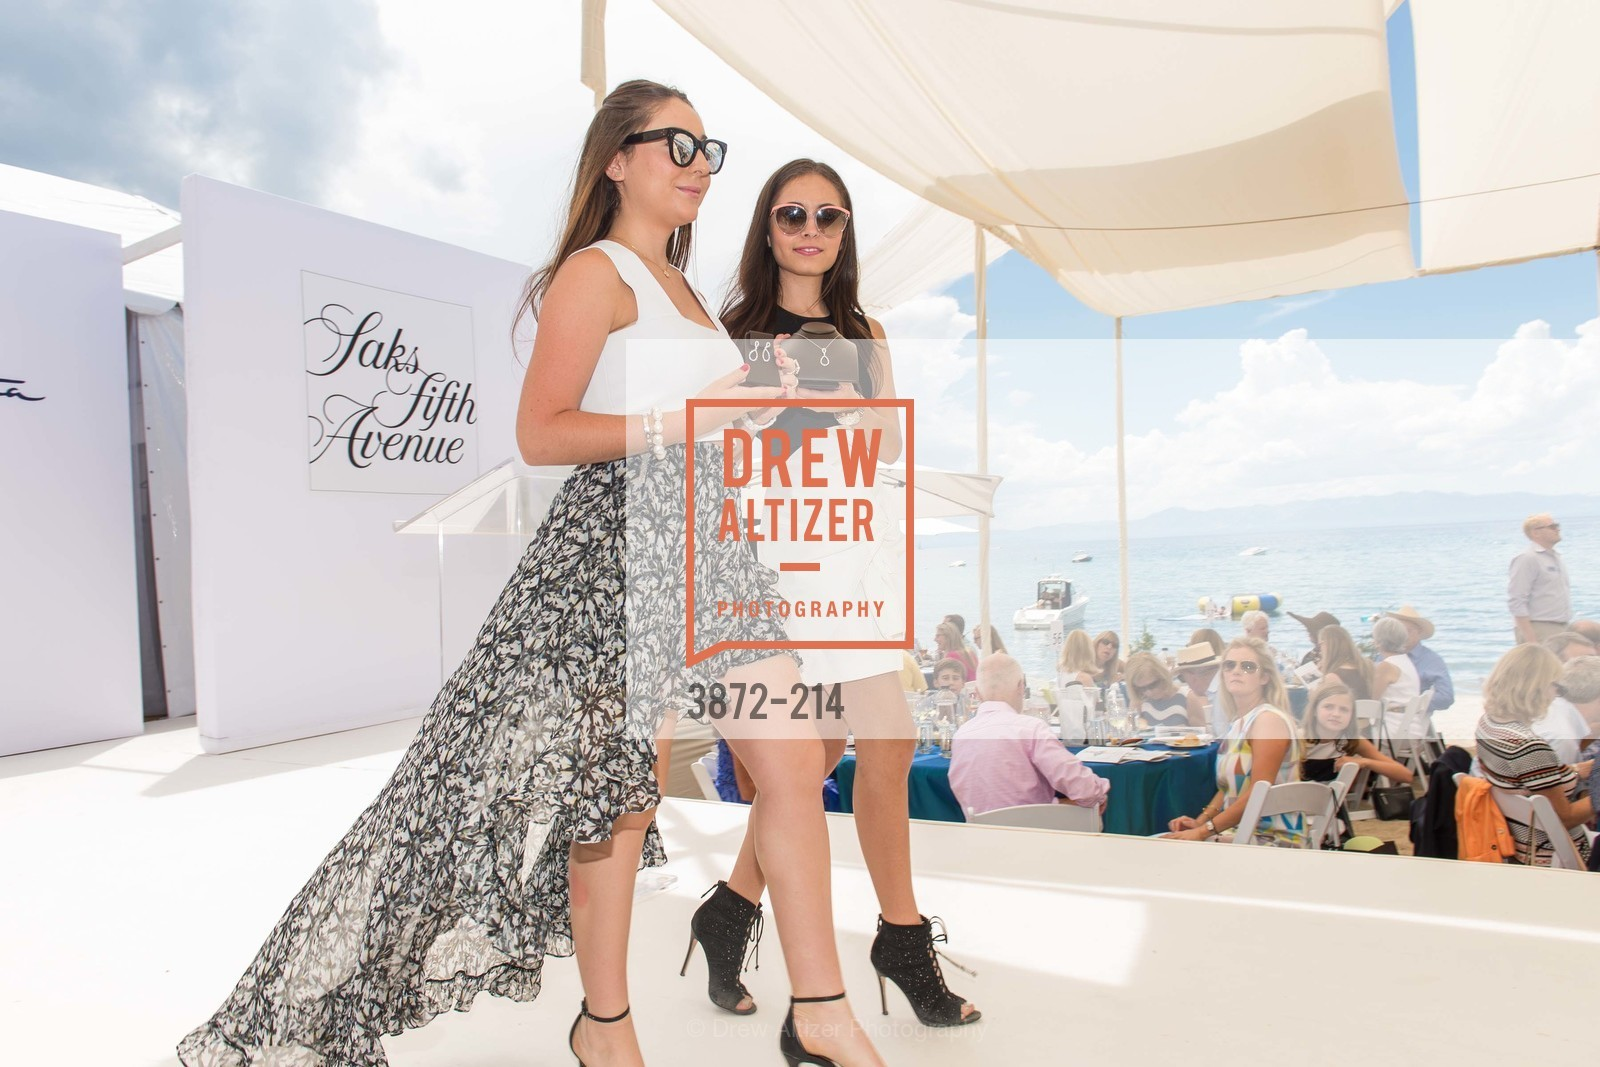 Jenni Gellman, Sydney Seligman, Saks Fifth Avenue and The League to Save Lake Tahoe Present Fashion on the Lake, Private Residence, August 1st, 2015,Drew Altizer, Drew Altizer Photography, full-service agency, private events, San Francisco photographer, photographer california